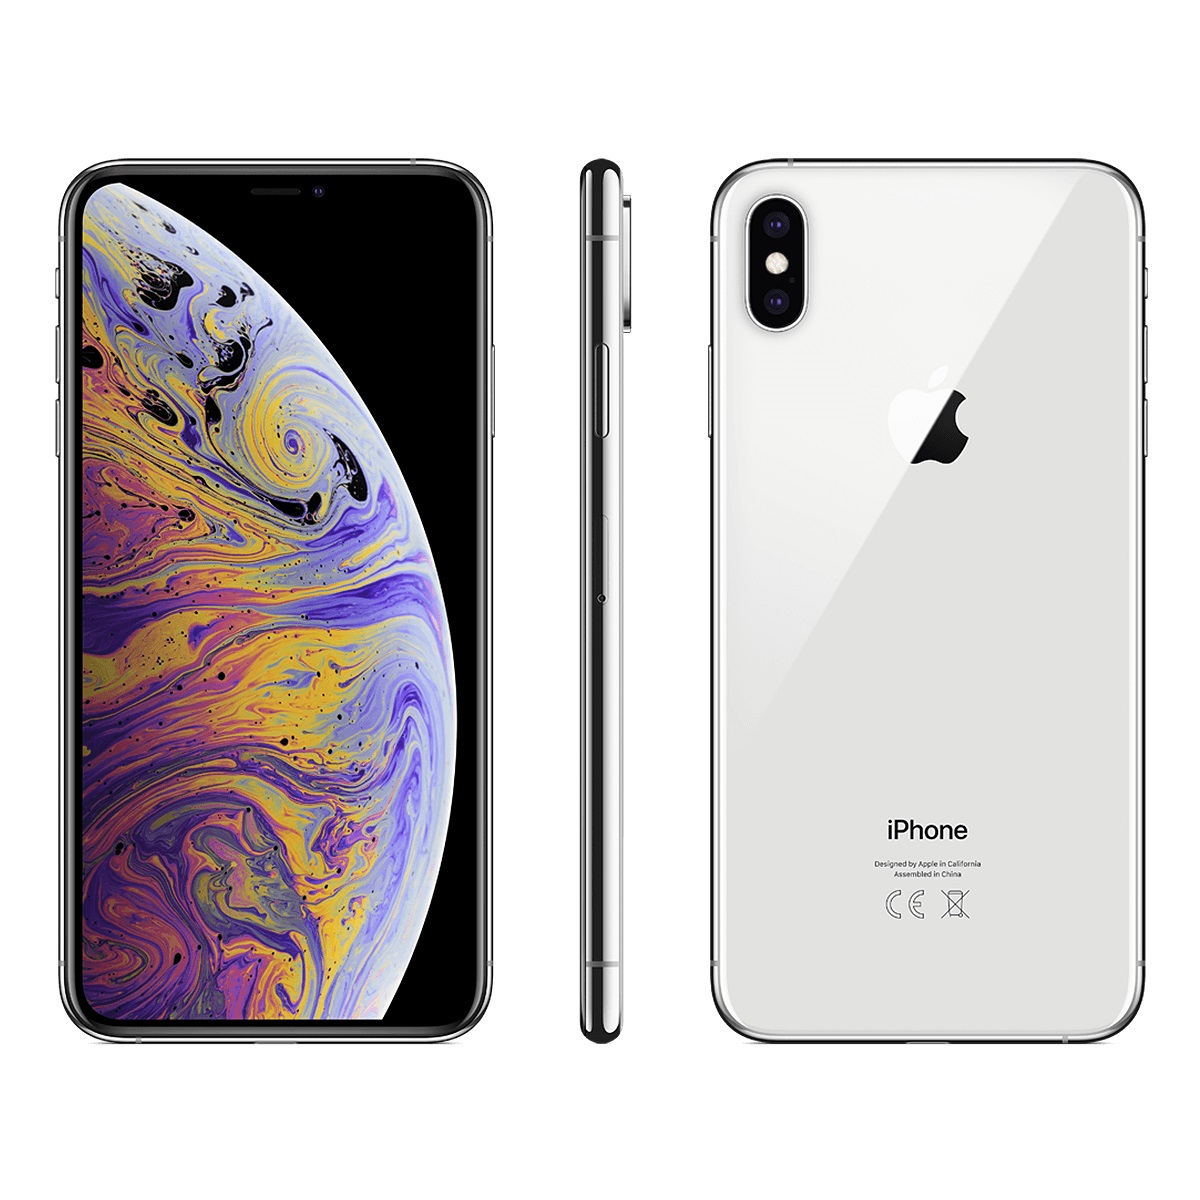 Image of Apple iPhone XS 256GB Dual sim (nano-SIM & eSIM) SIM FREE/ UNLOCKED A1920 - Silver